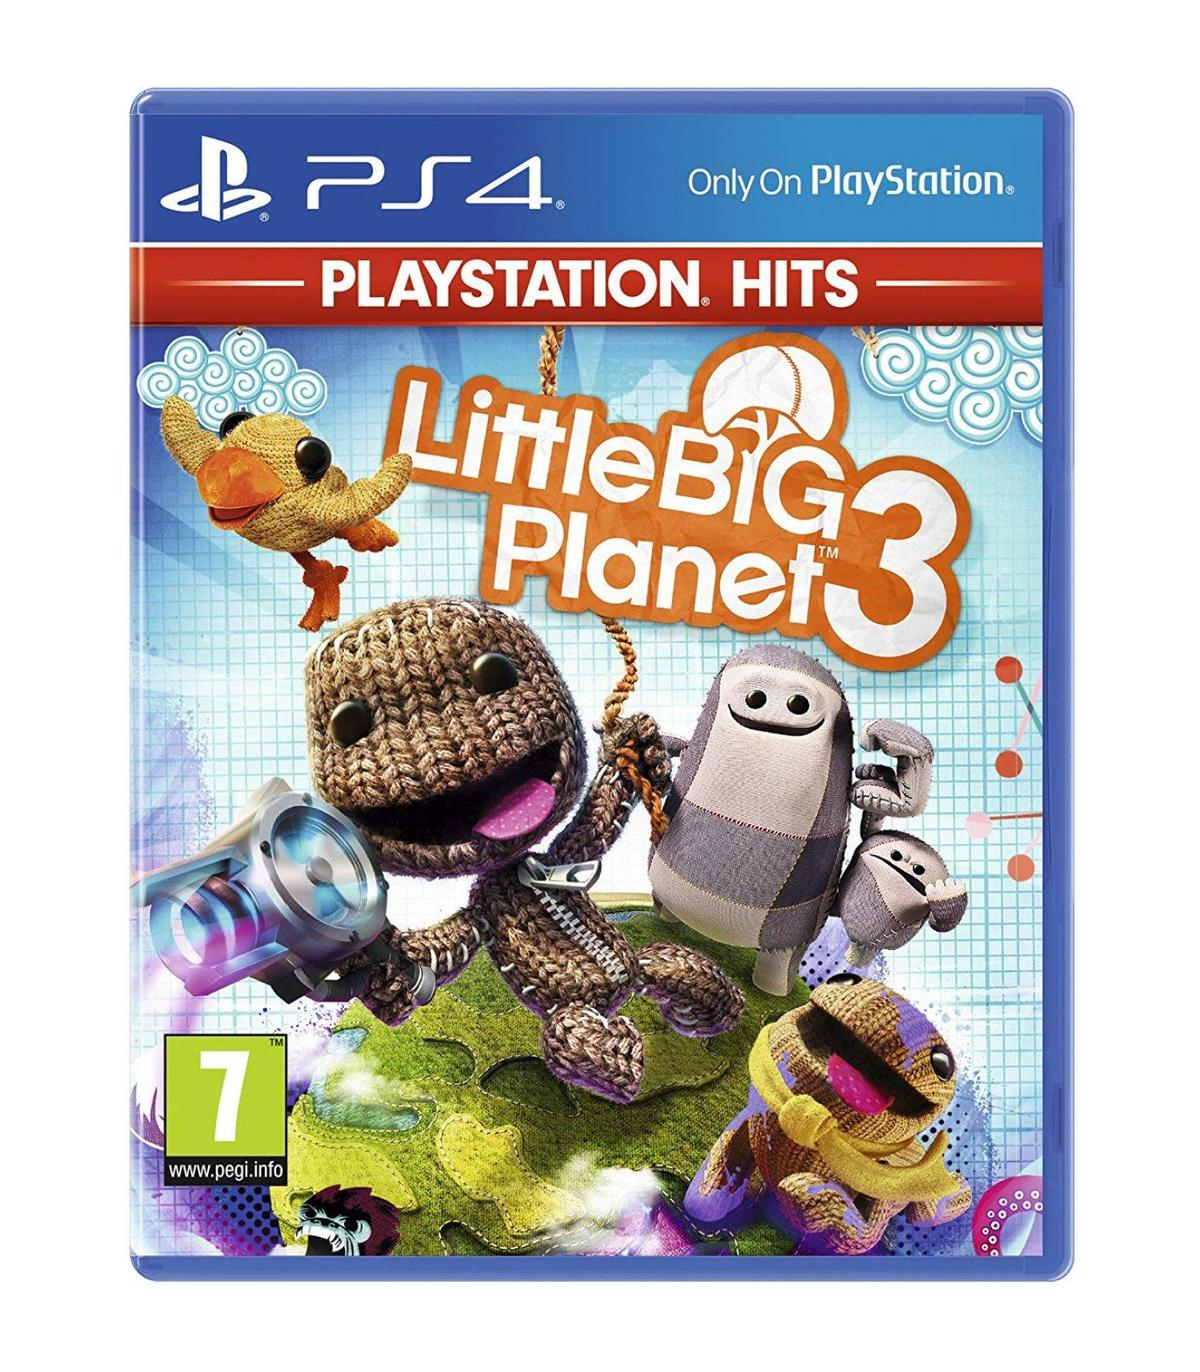 LittleBig Planet 3 (Playstation Hits) (Nordic)